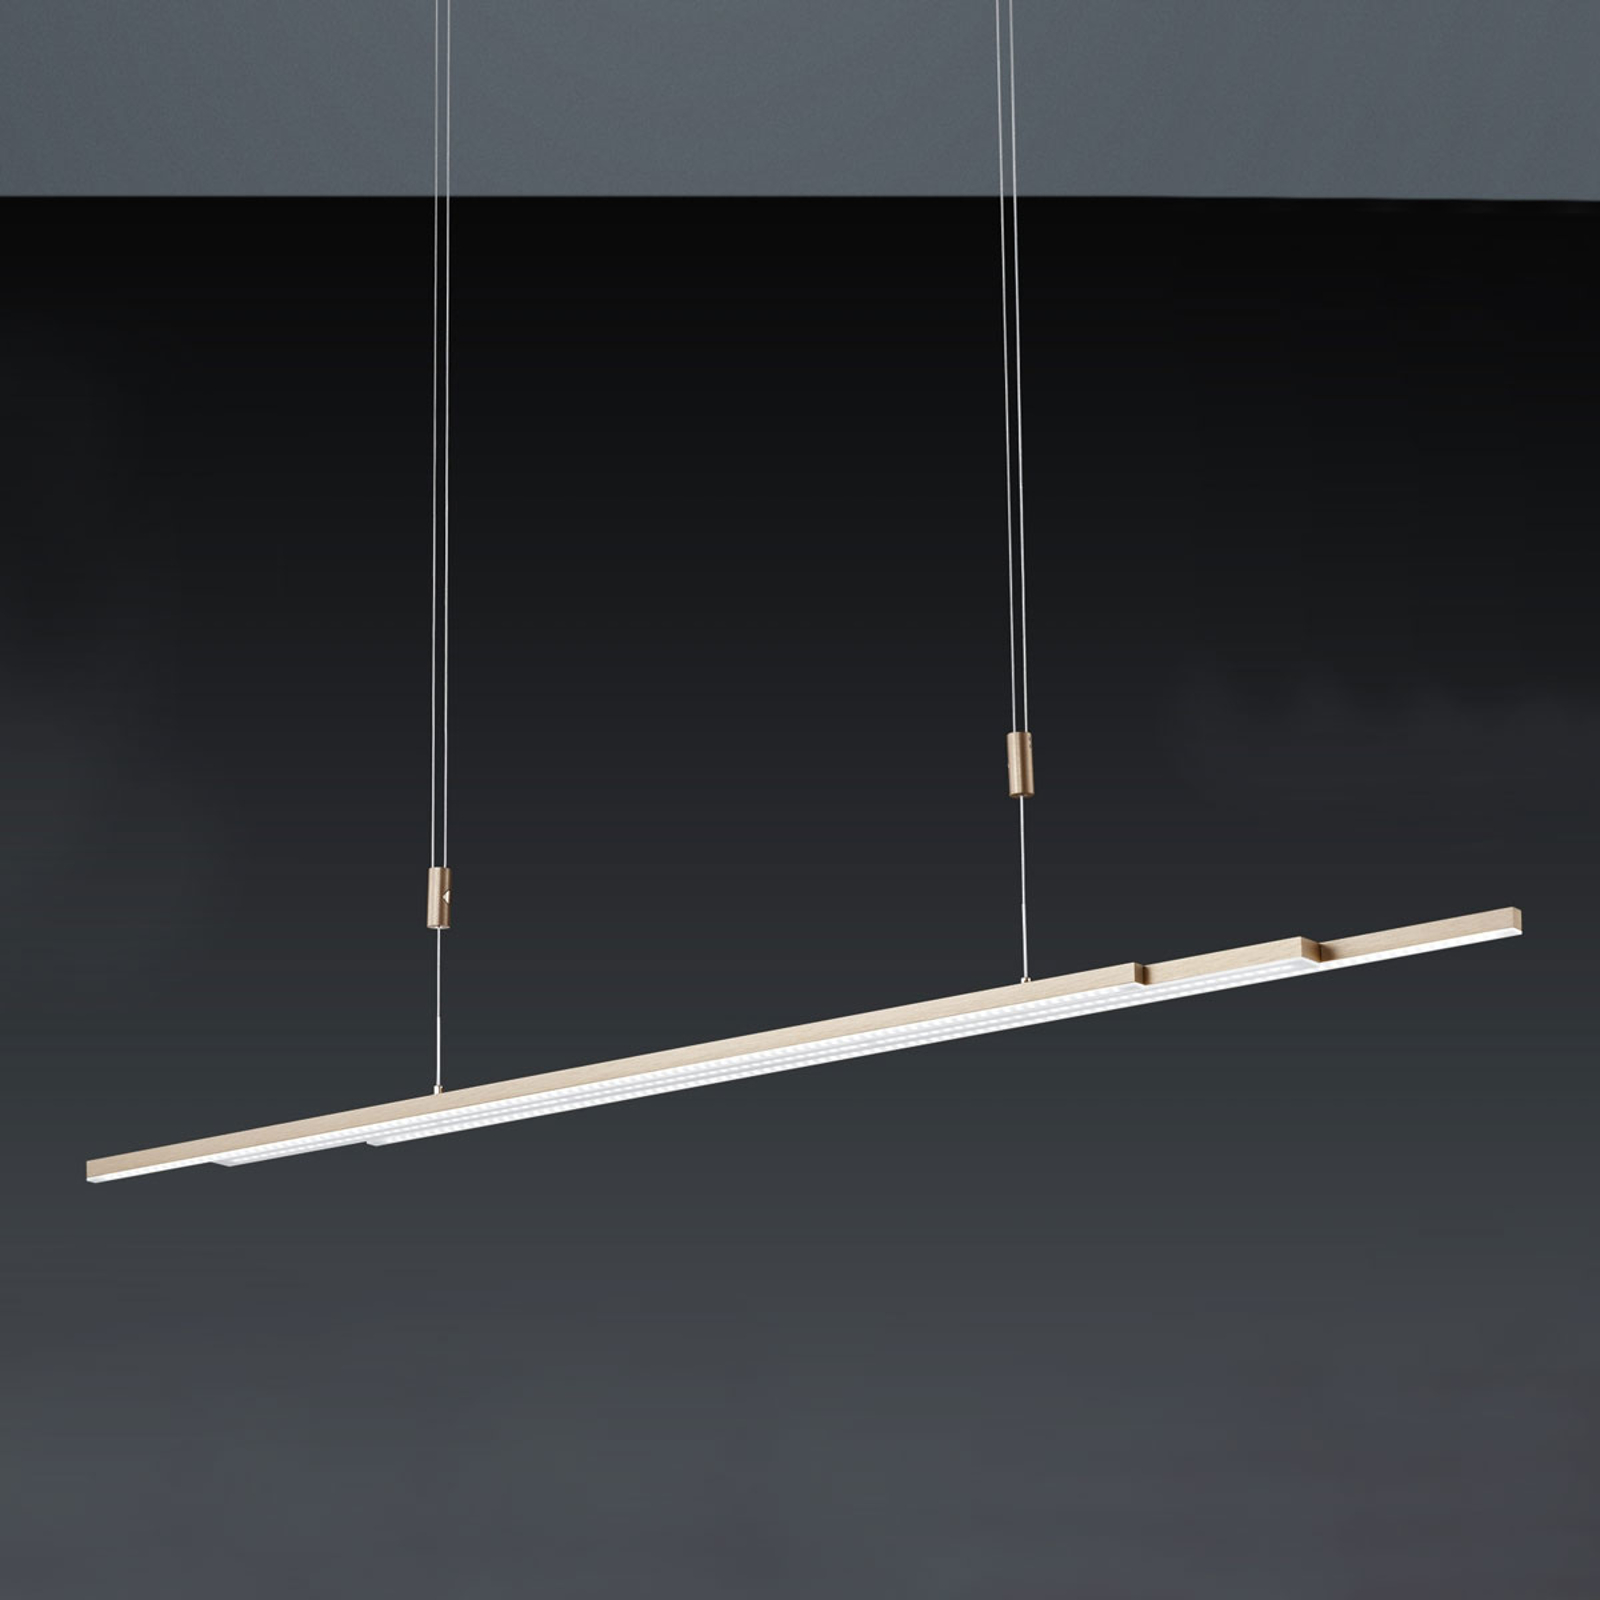 BANKAMP L-lightLINE LED-hanglamp, rosé goud